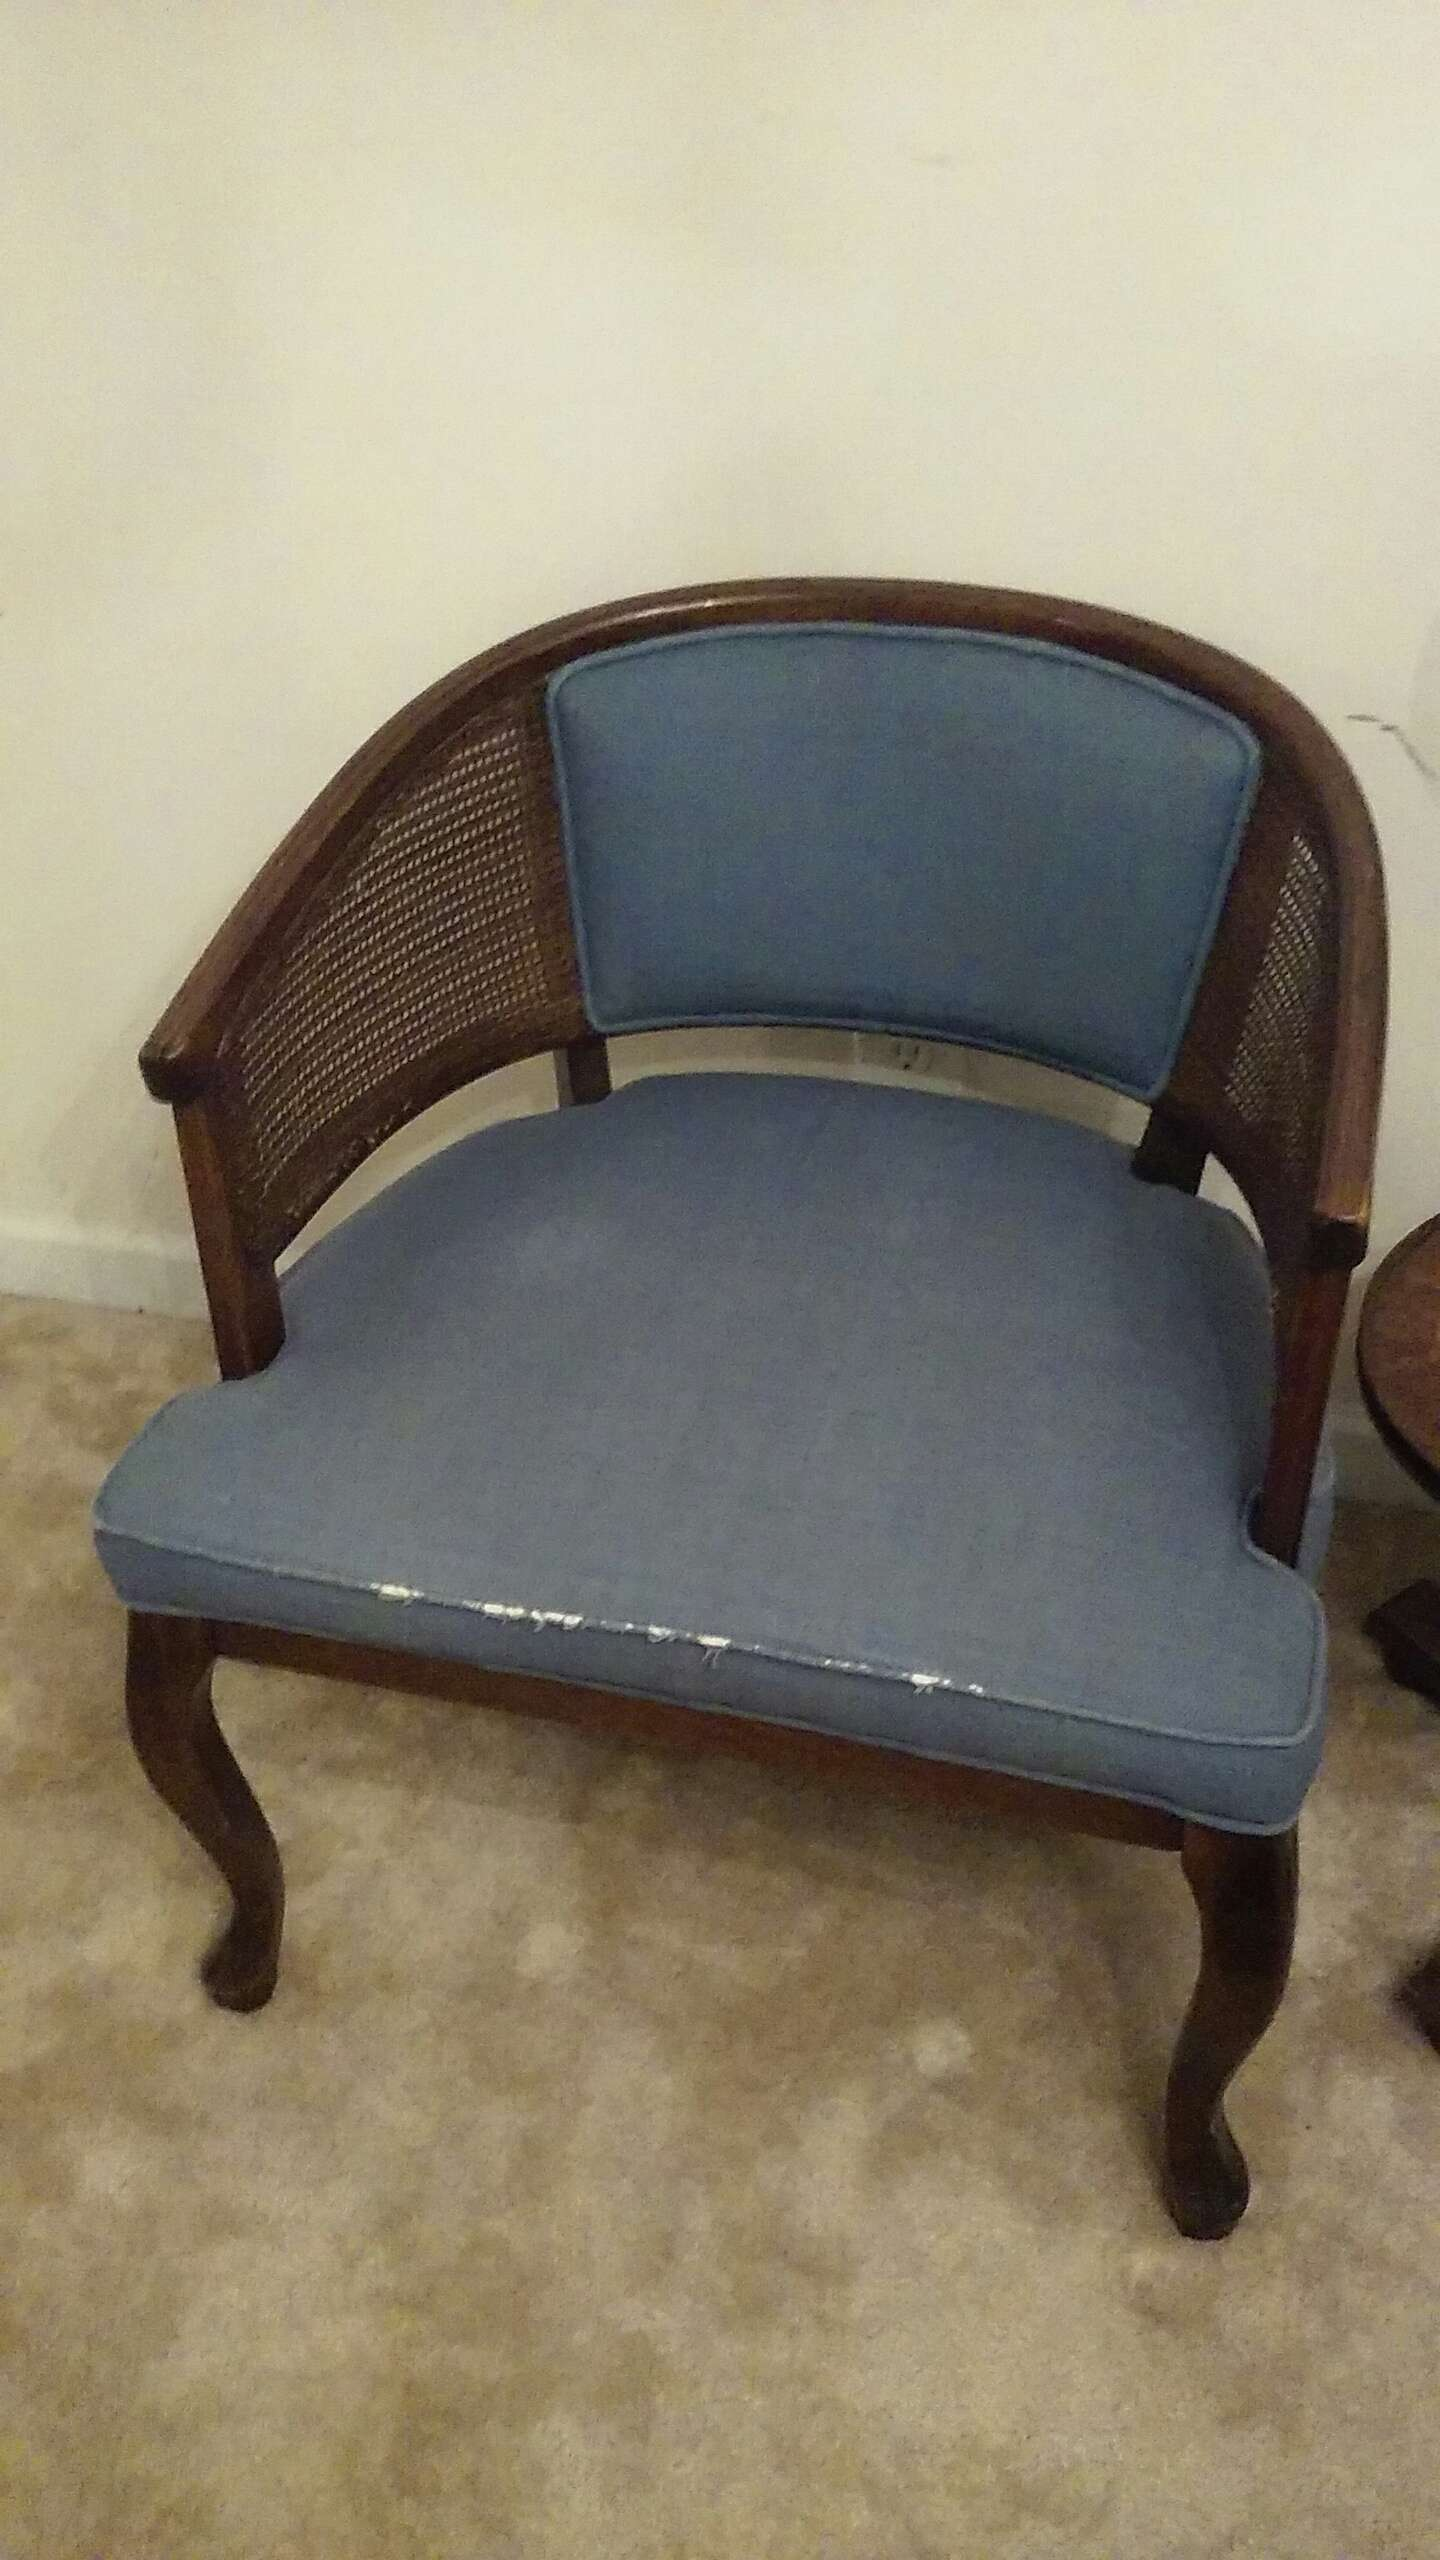 ANTIQUE ROUND BACK CHAIR ! - ANTIQUE ROUND BACK CHAIR !!! For Sale In Decatur, GA - 5miles: Buy